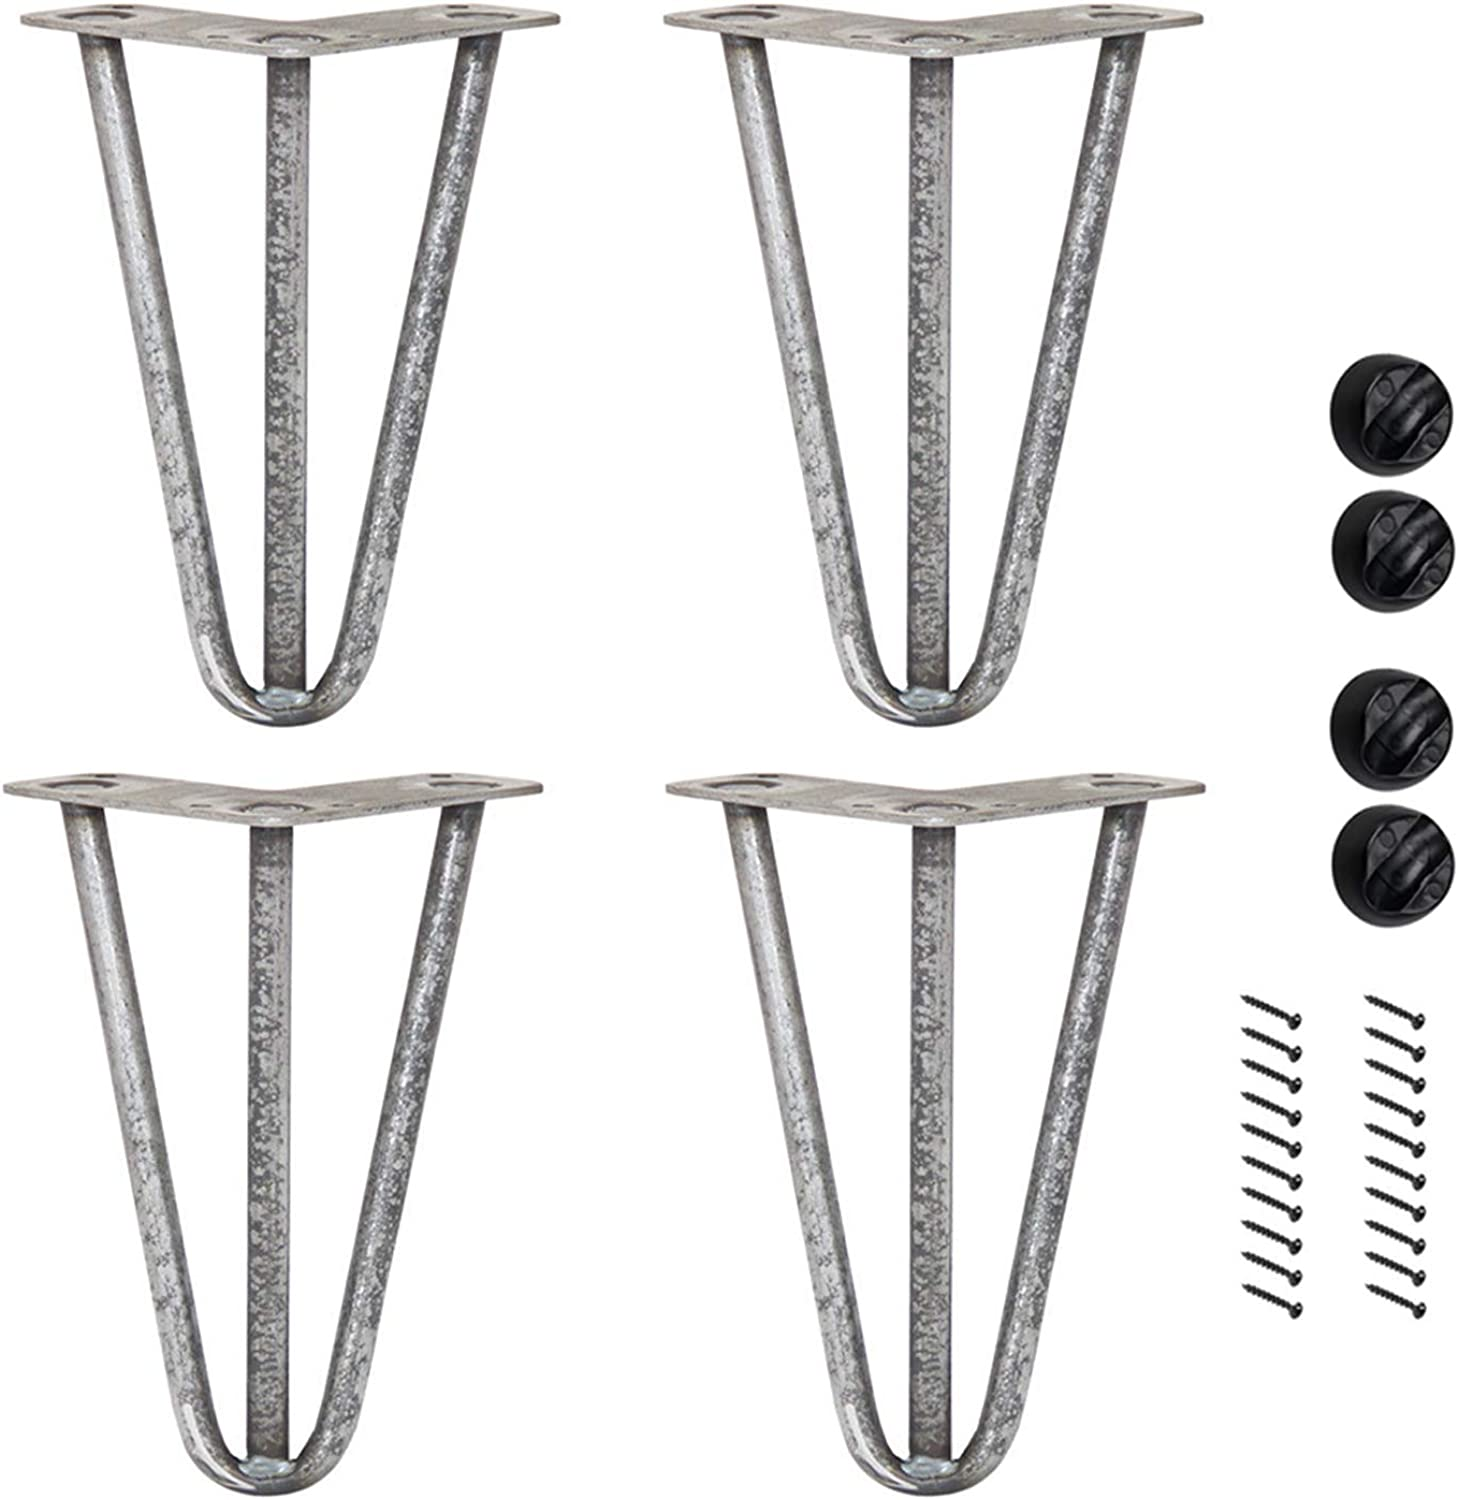 Bronkey 4PCS Vintage Industrial Style Hairpin Legs, 10  Three Rods 3 8  Solid Bar Construction Design, Raw Steel Metal Heavy Duty Table Leg, for DIY Living Room TV Stand Sofa Coffee Shop Decoration